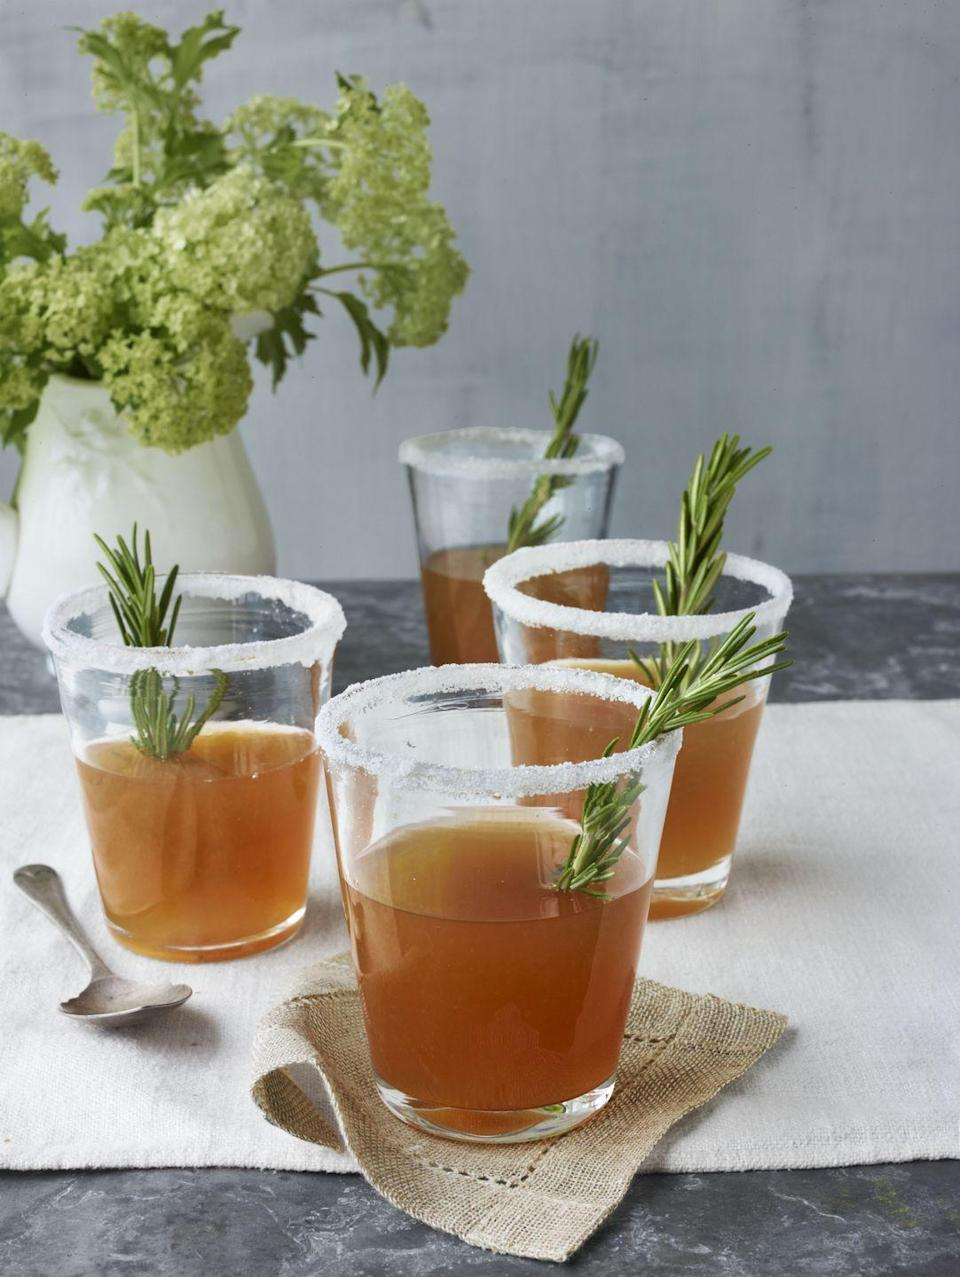 "<p>A verdant herb sprig, sugared rim, and dash of honey—swapped in for orange liqueur—update the classic Cognac cocktail.</p><p><strong><a href=""https://www.countryliving.com/food-drinks/recipes/a4153/rosemary-infused-honey-sidecars-recipe-clv0413/"" rel=""nofollow noopener"" target=""_blank"" data-ylk=""slk:Get the recipe"" class=""link rapid-noclick-resp"">Get the recipe</a>.</strong></p><p><a class=""link rapid-noclick-resp"" href=""https://www.amazon.com/Expert-Cocktail-Shaker-Home-Bar/dp/B01MXRSMZP?tag=syn-yahoo-20&ascsubtag=%5Bartid%7C10050.g.738%5Bsrc%7Cyahoo-us"" rel=""nofollow noopener"" target=""_blank"" data-ylk=""slk:SHOP BAR TOOLS"">SHOP BAR TOOLS</a> </p>"